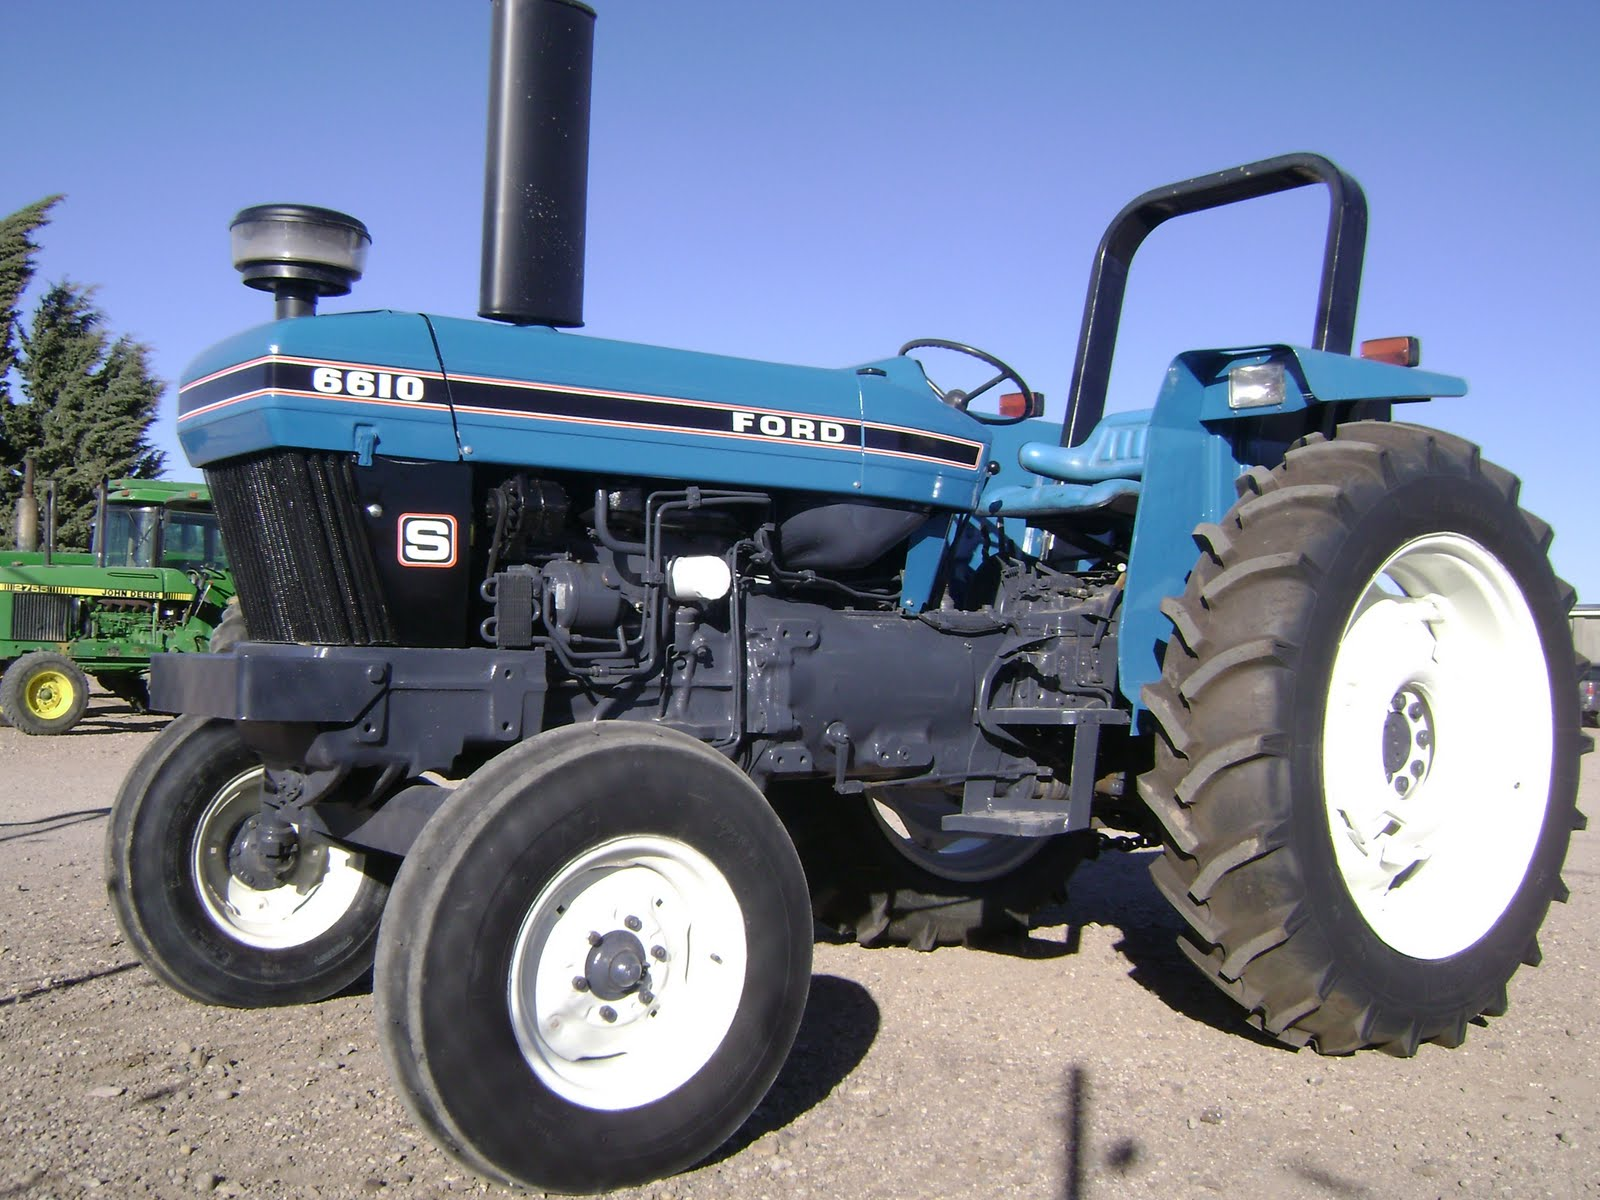 Ford 6610 photo - 1